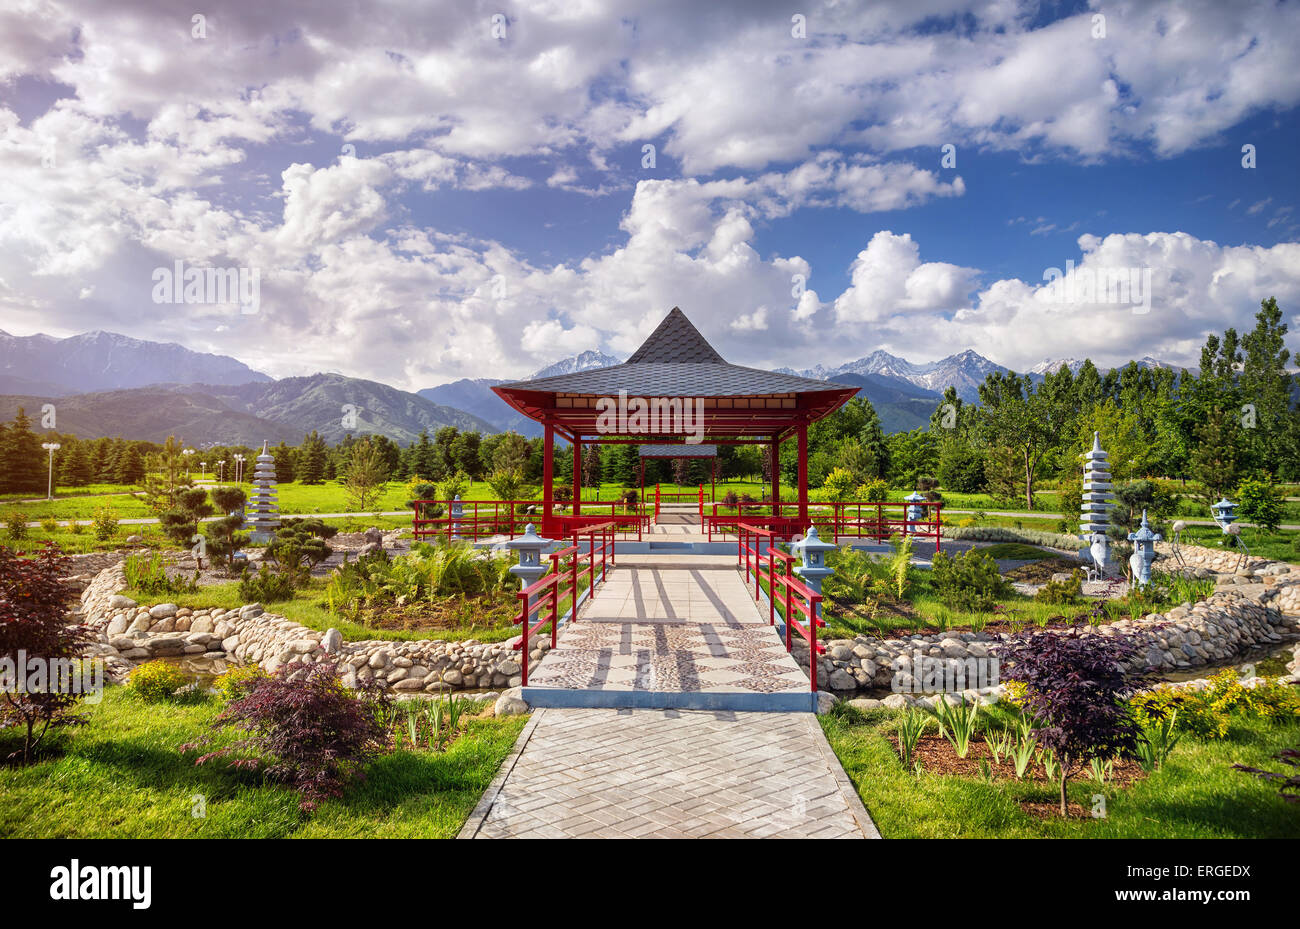 Japanese garden with red pagoda at mountains and blue sky in dendra park of first president in Almaty, Kazakhstan - Stock Image